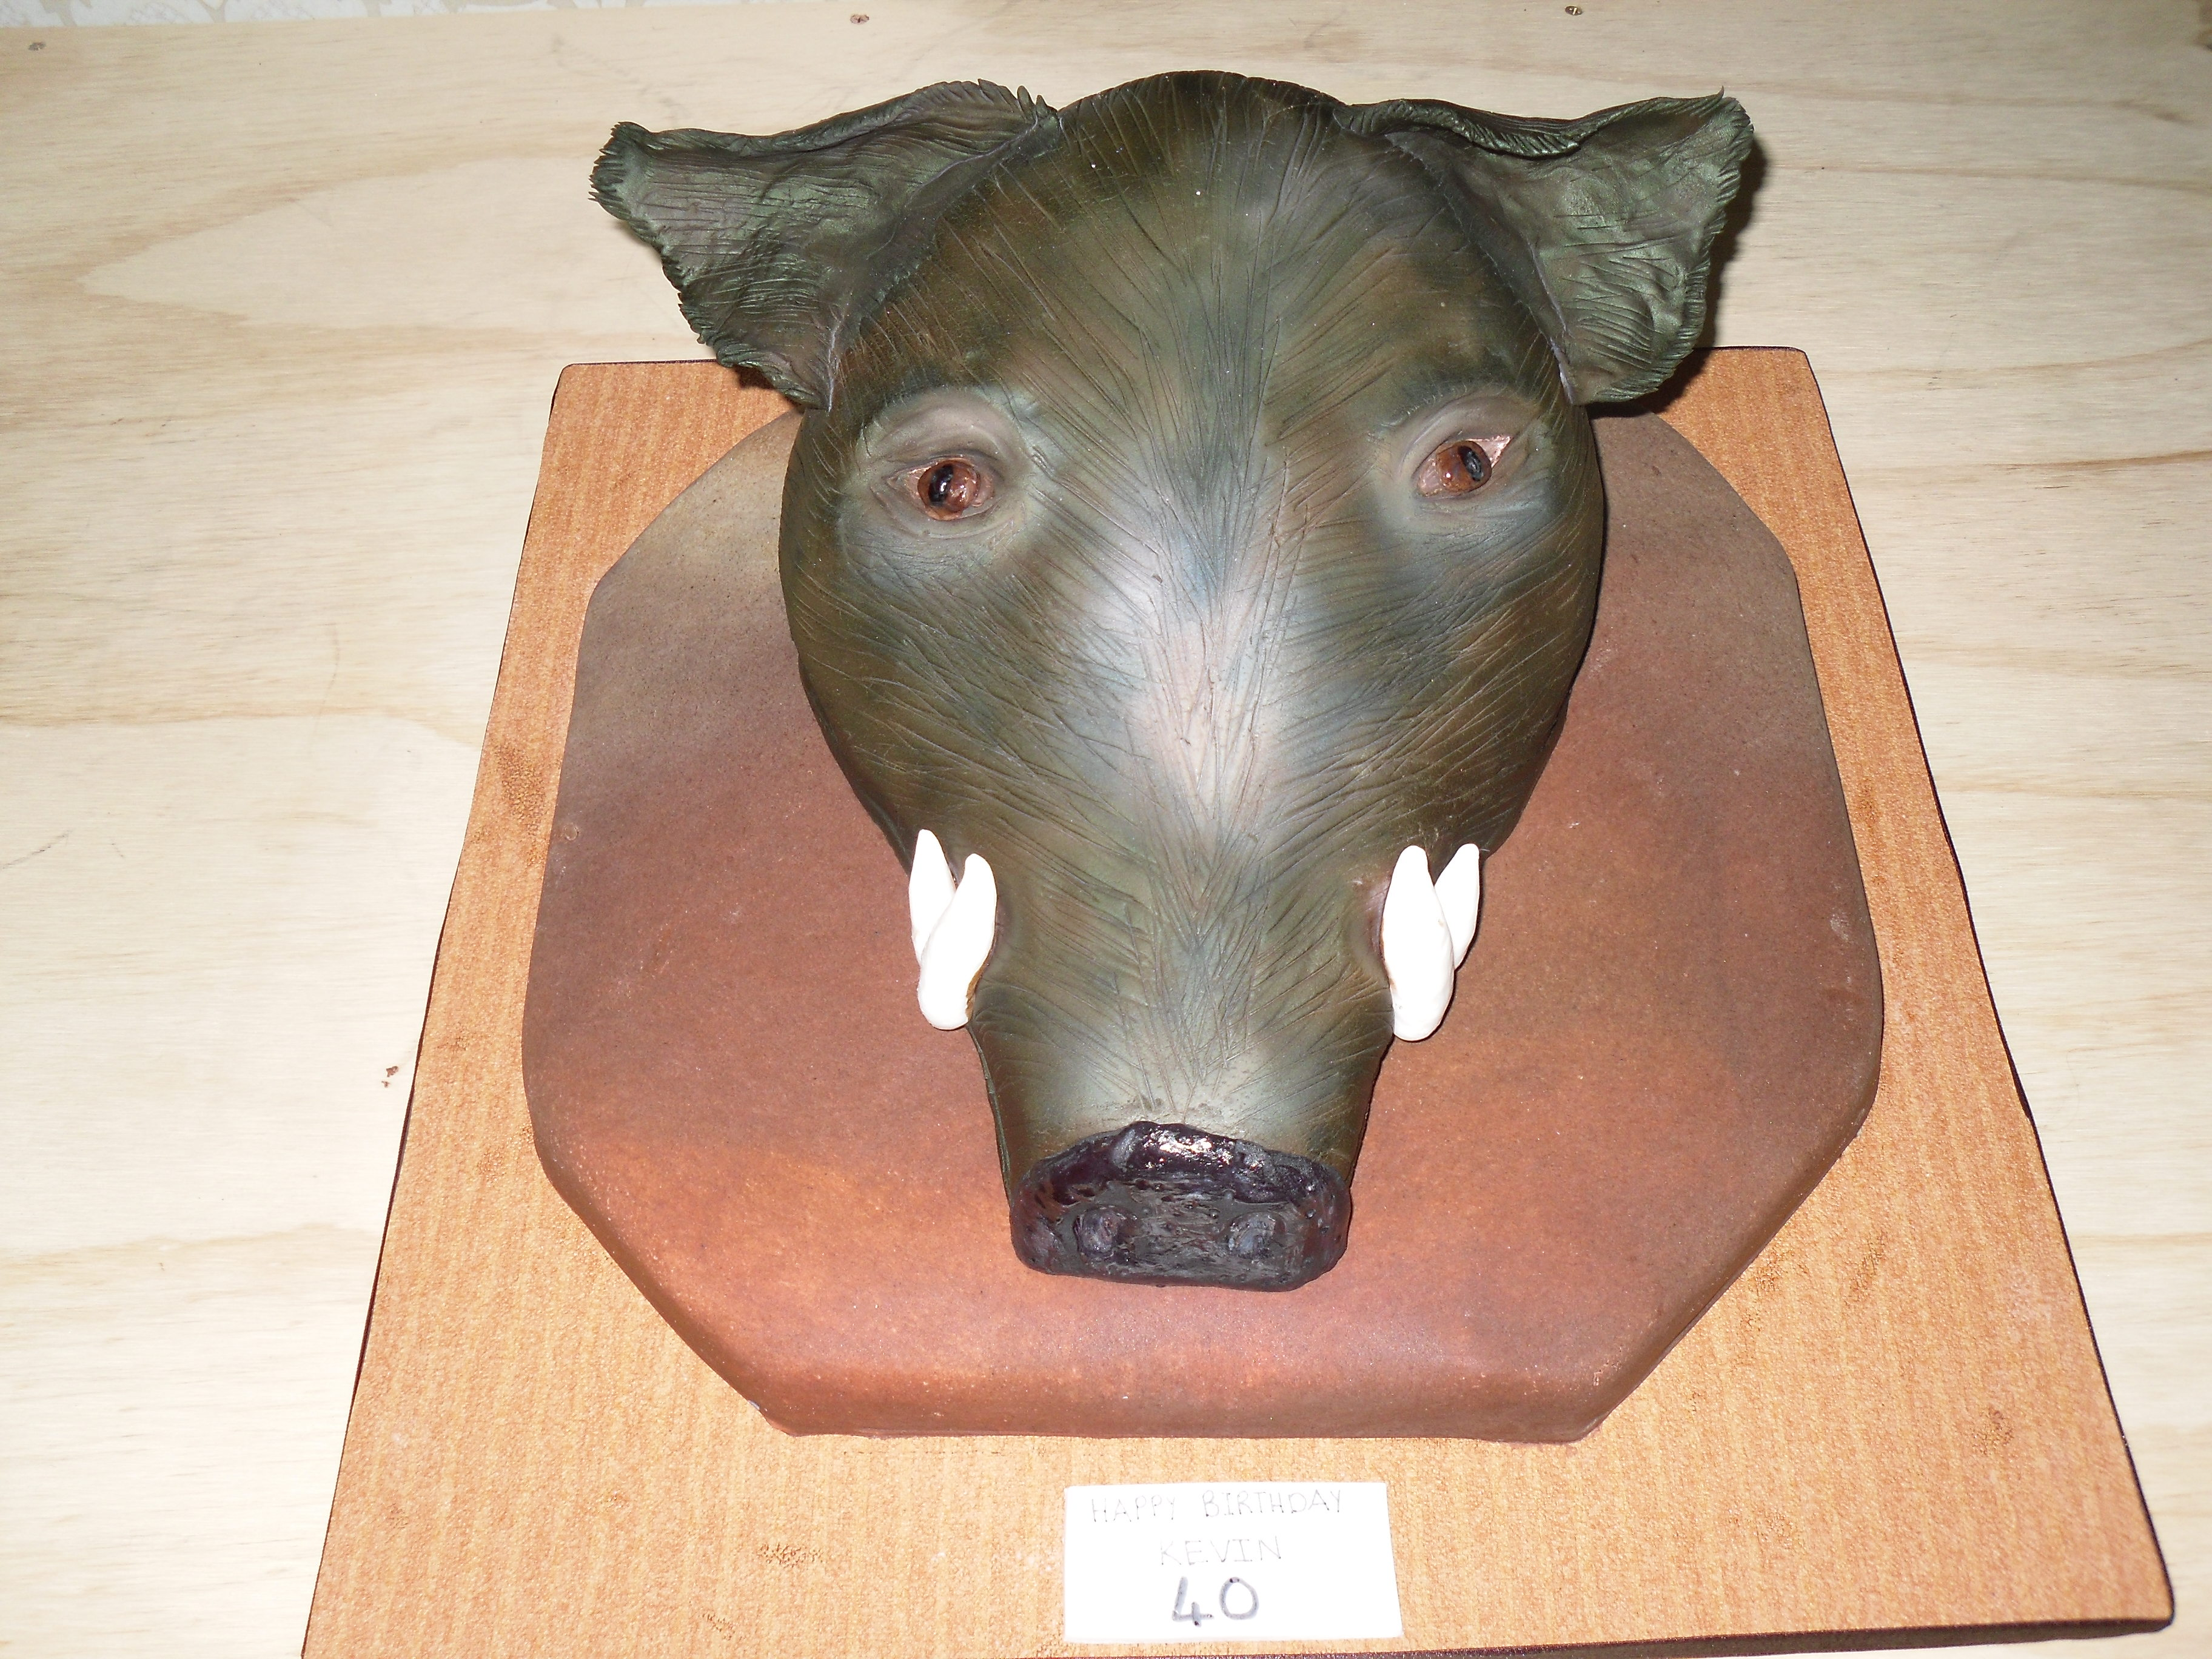 A cake in the shape of a boars head